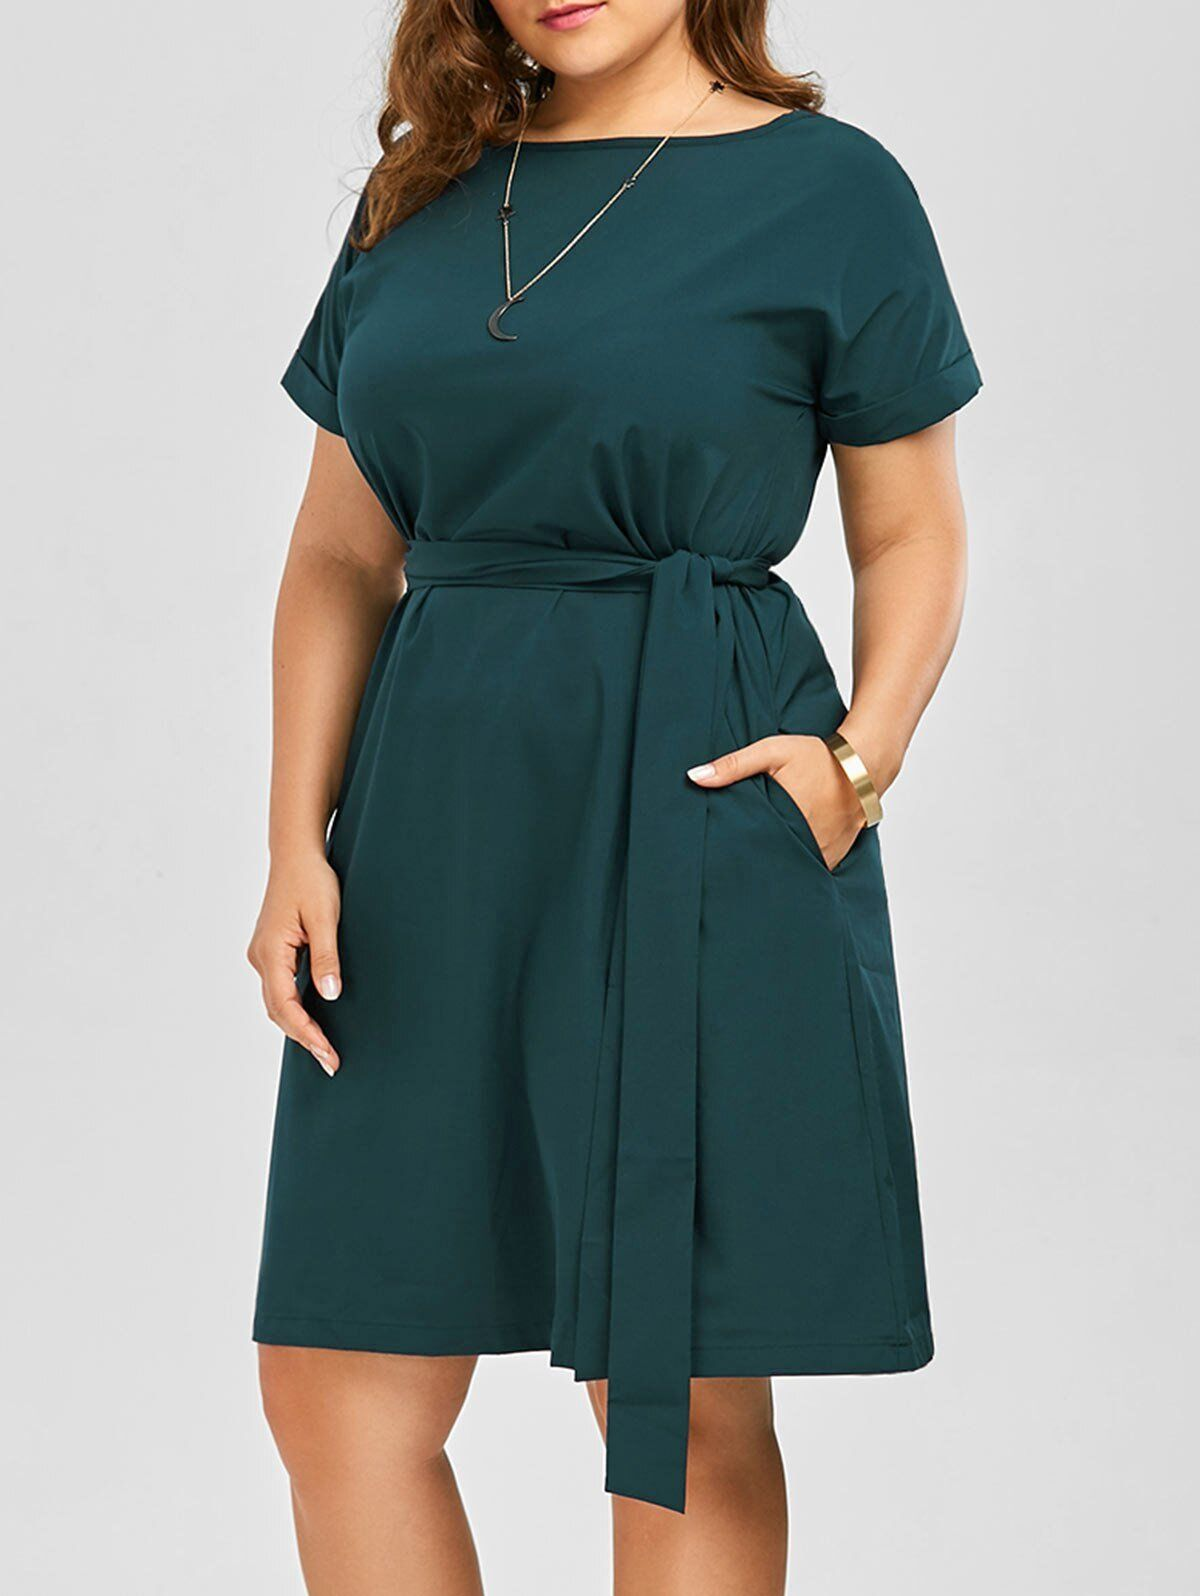 Plus Size Belted Knee Length Dress With Pockets Women Clothes Summer  Sexy O Neck Dress Vintage Office Work Wear, Dark Forest Green / XXL 1